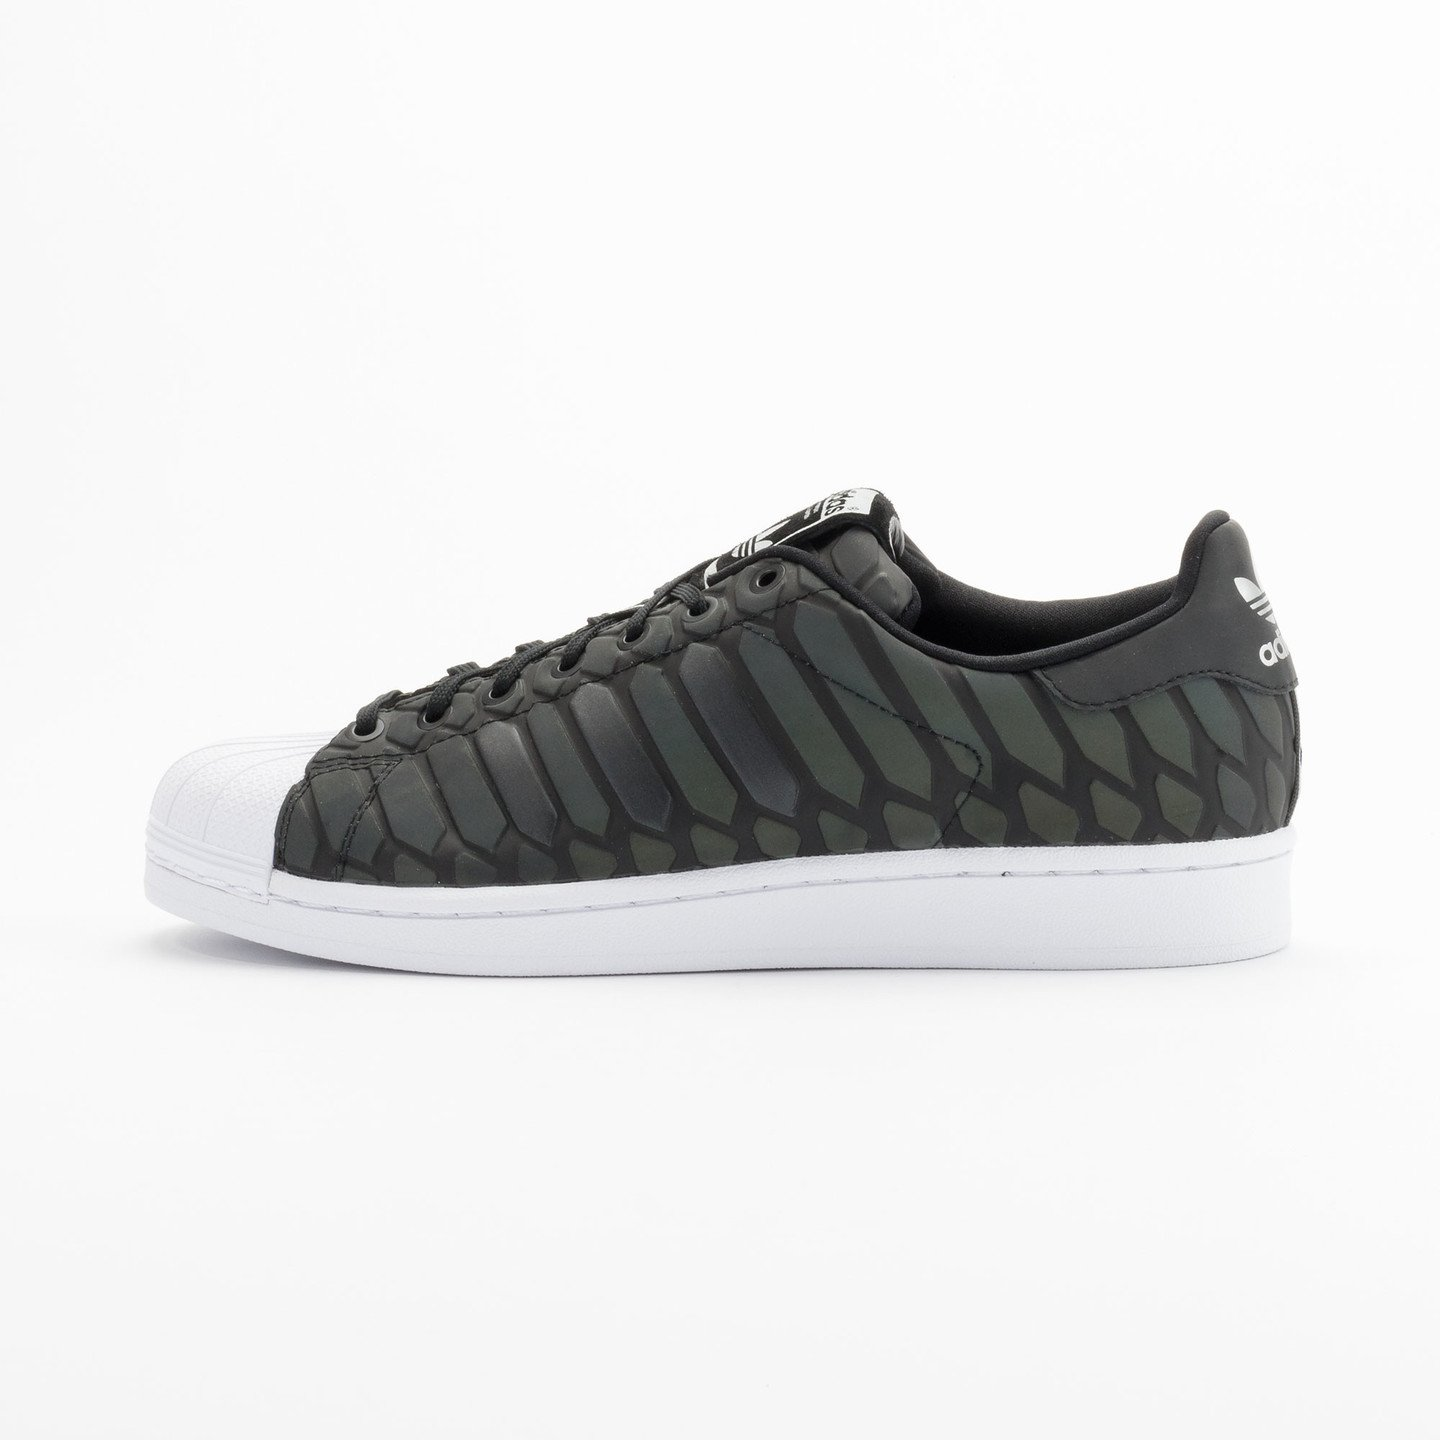 Adidas Superstar Xeno Pack Cblack / Supcol / Ftwwht D69366-38